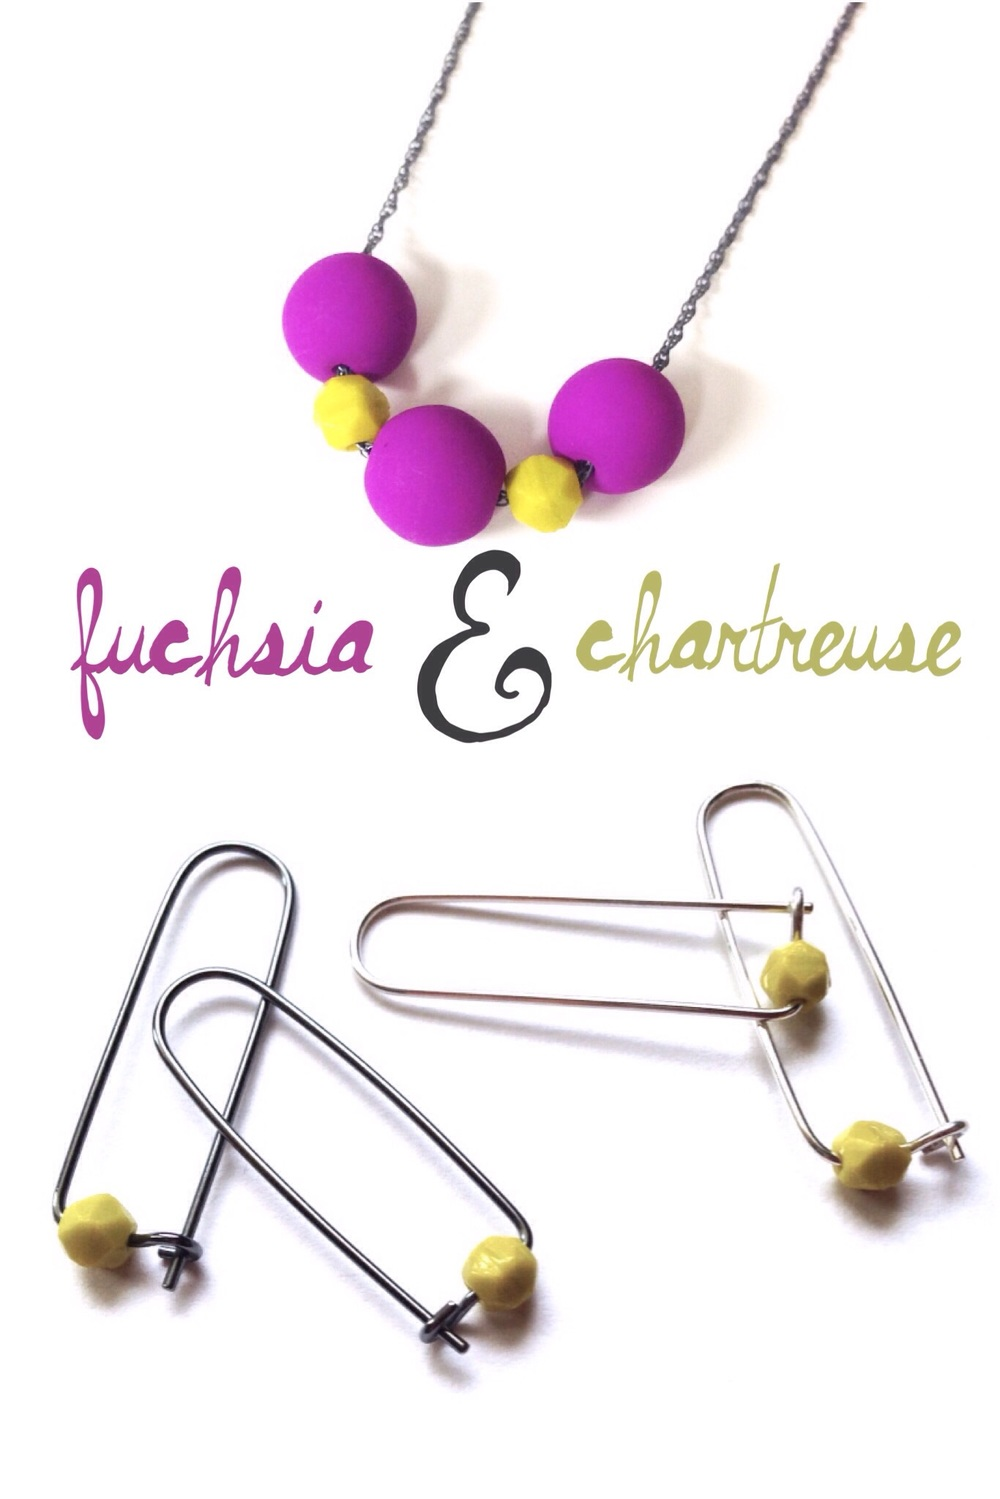 fuchsia and chartreuse.jpg